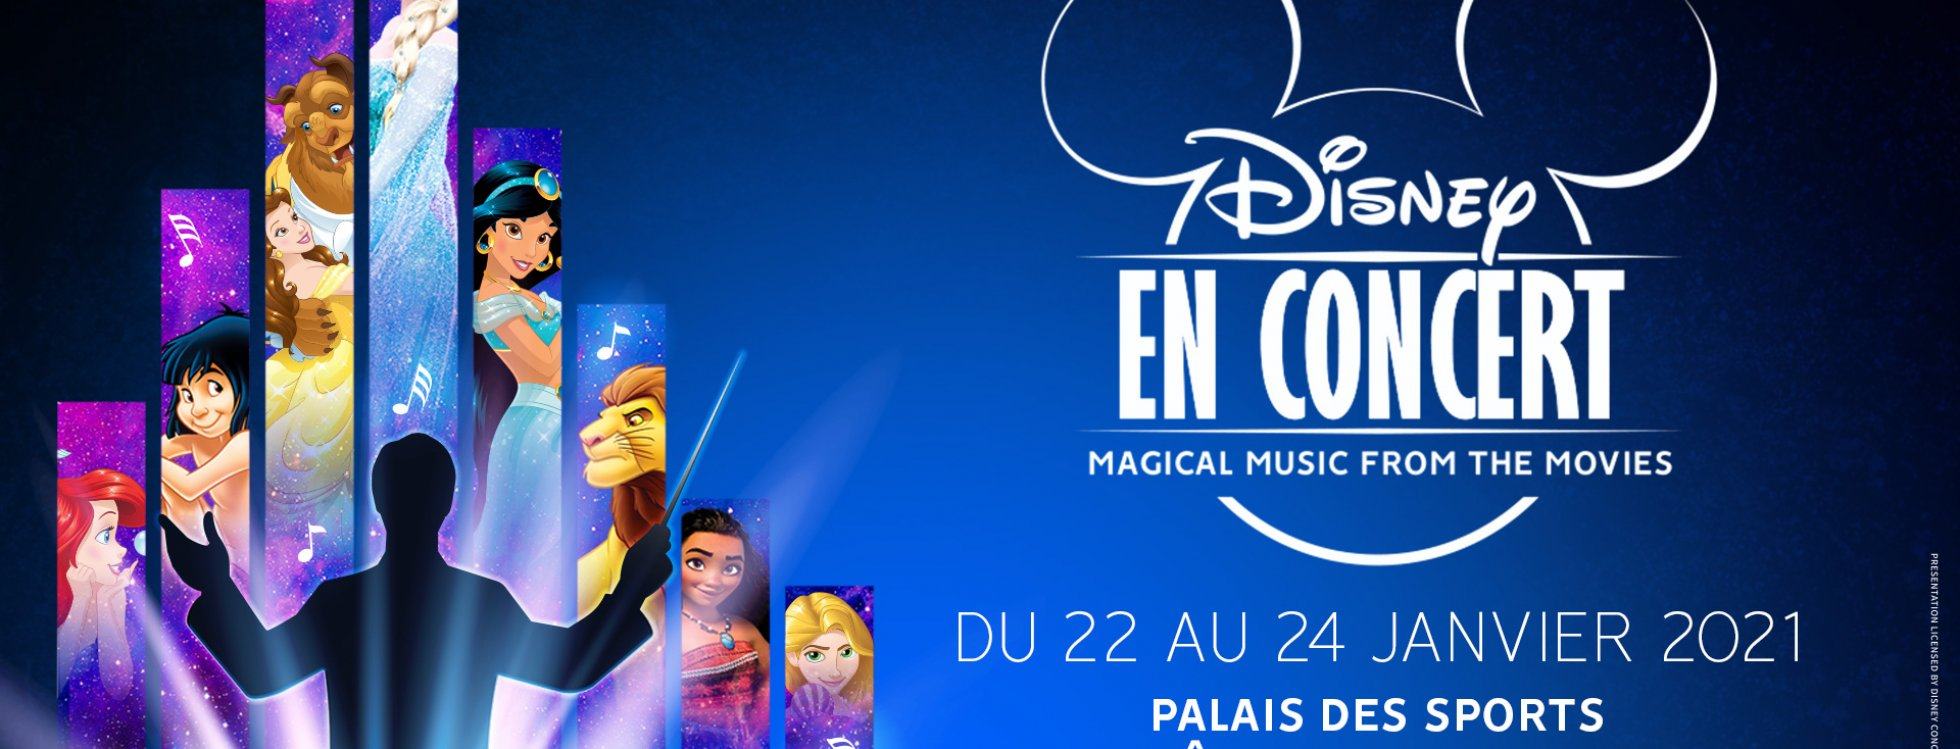 dome de paris : Disney en Concert - Magical Music from the Movies